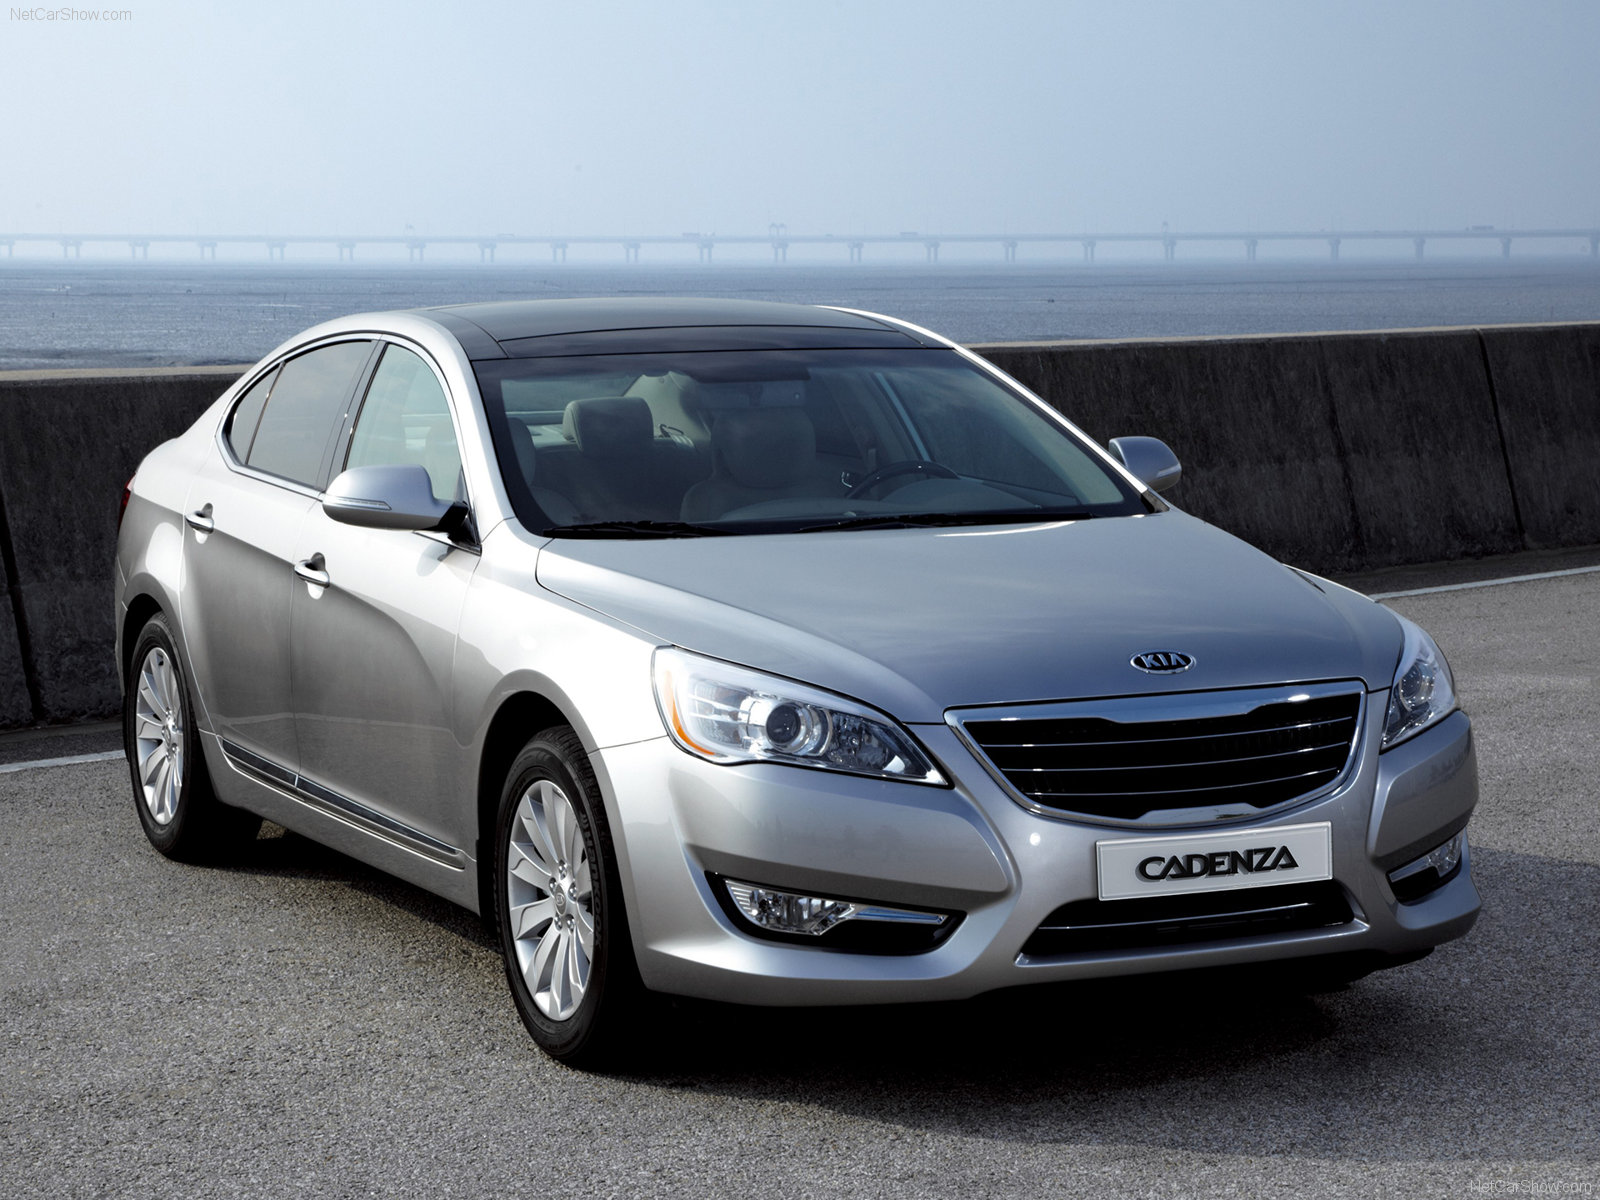 Kia Cadenza photo 69362